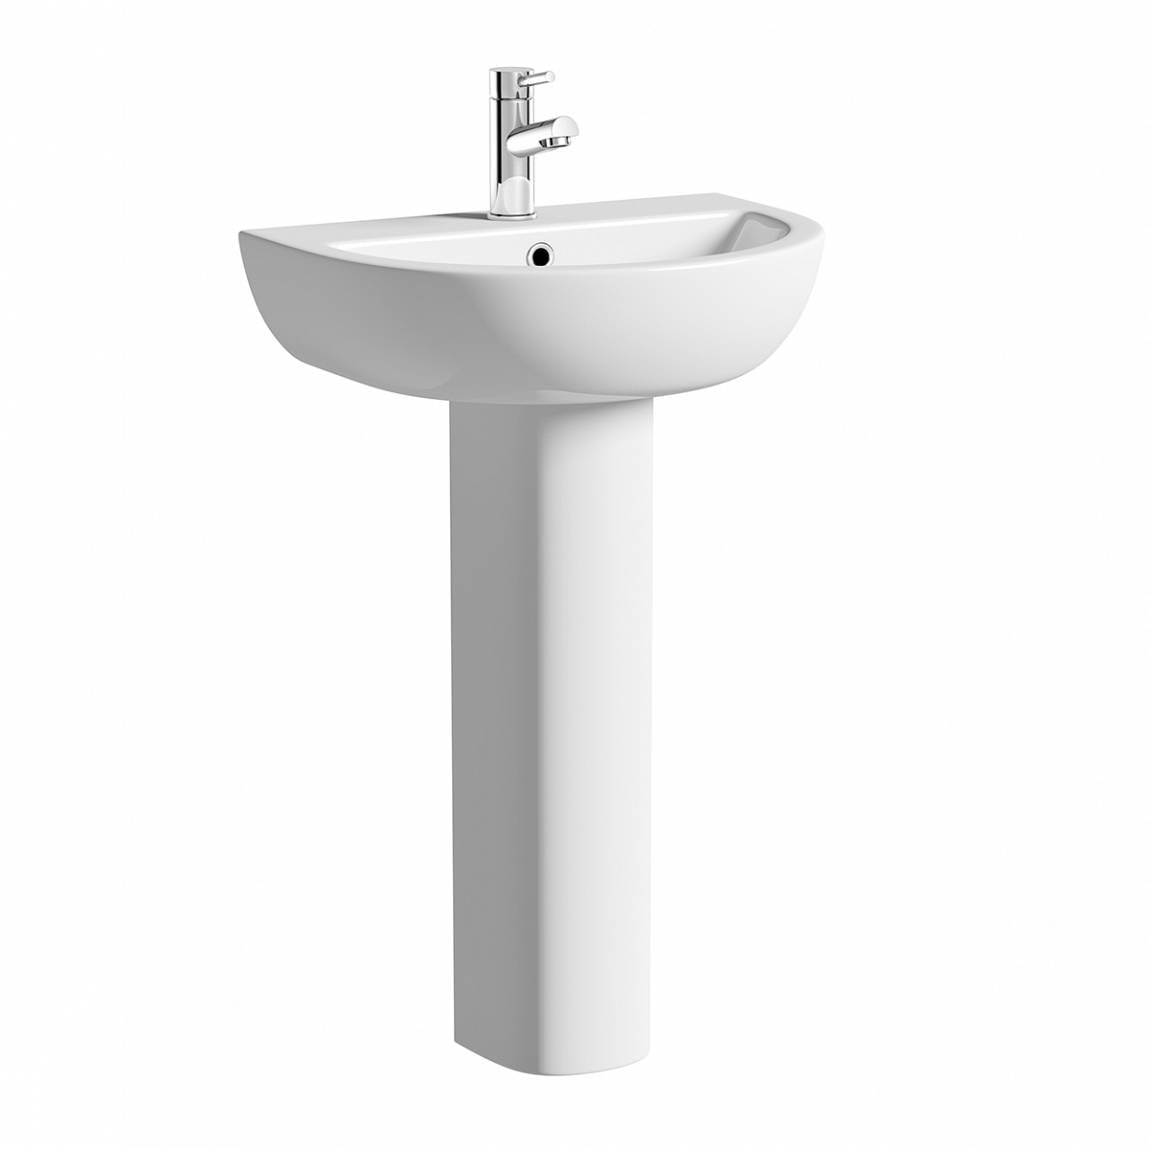 Orchard Elena 1 tap hole full pedestal basin with waste